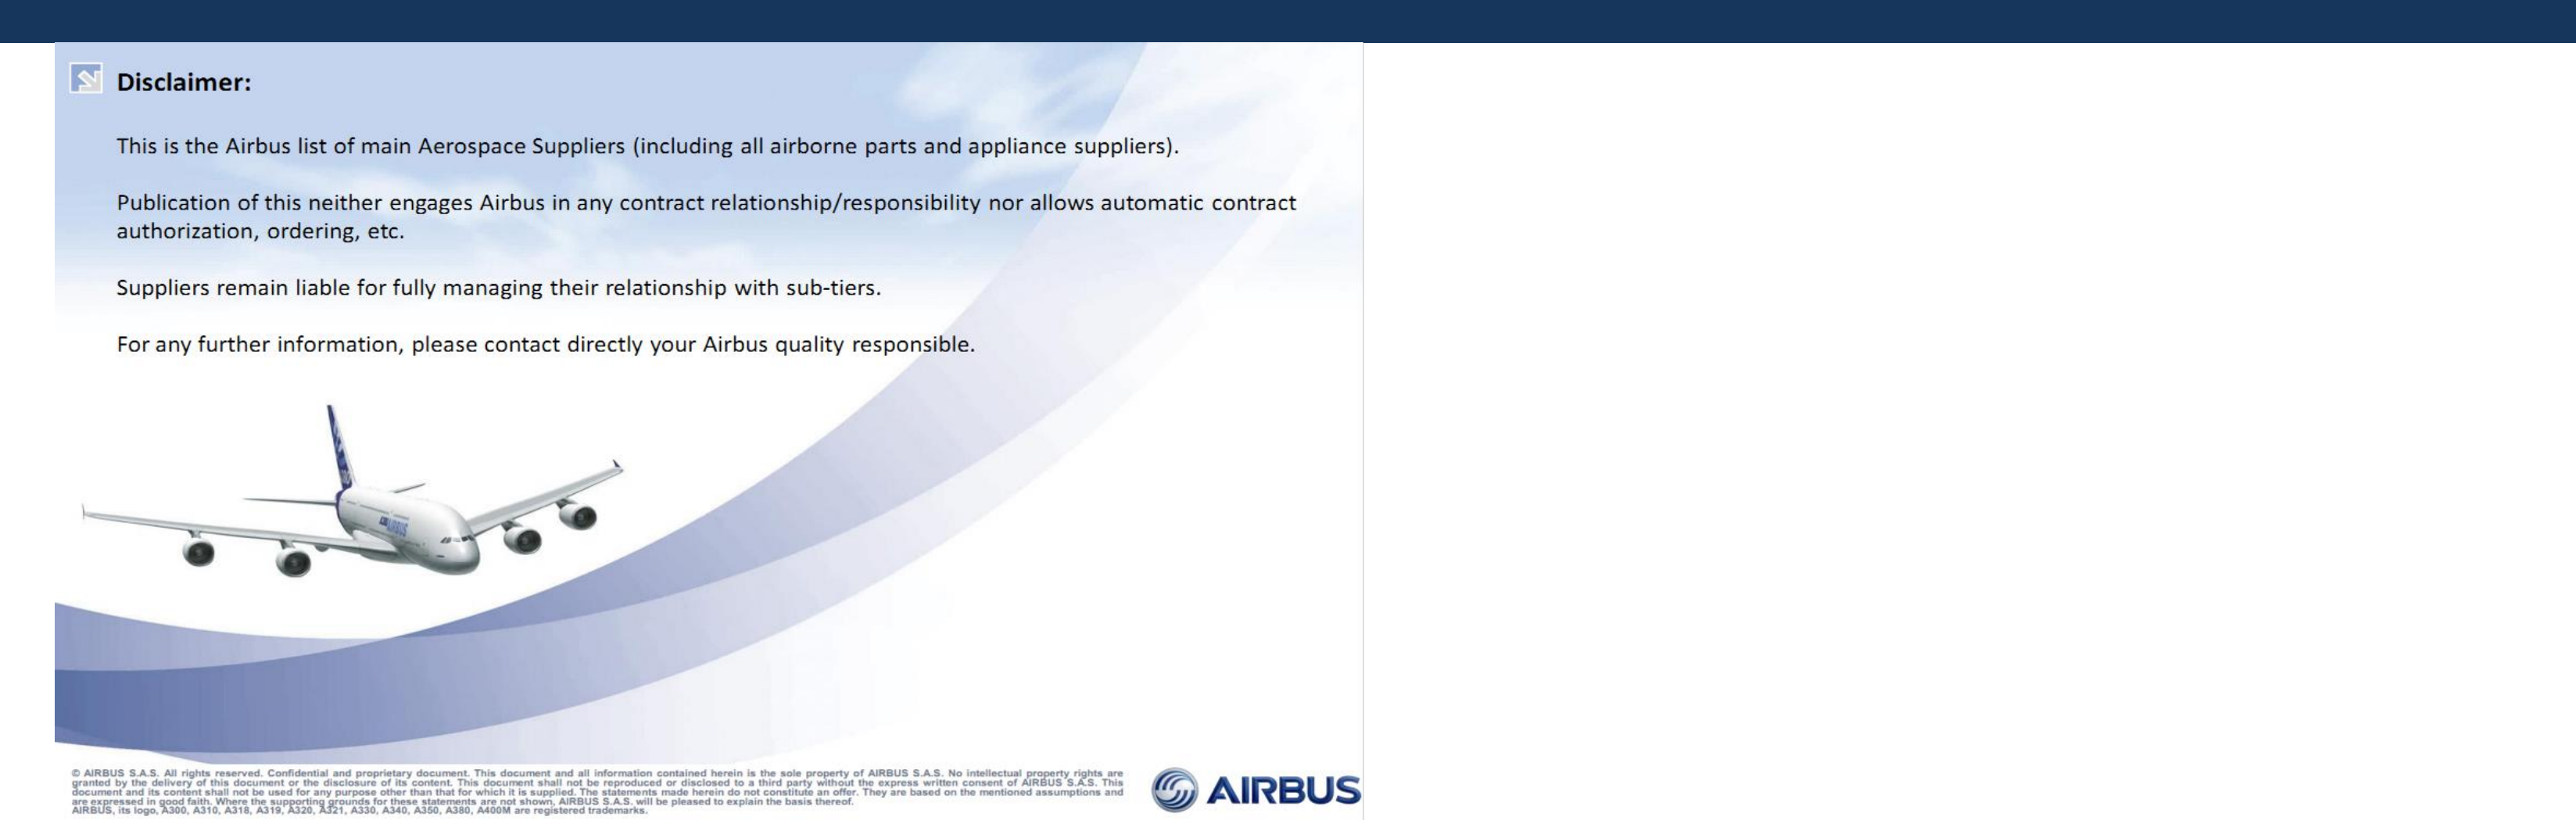 Admirable Airbus Suppliersapprovallist March2015 Pdf Document Alphanode Cool Chair Designs And Ideas Alphanodeonline